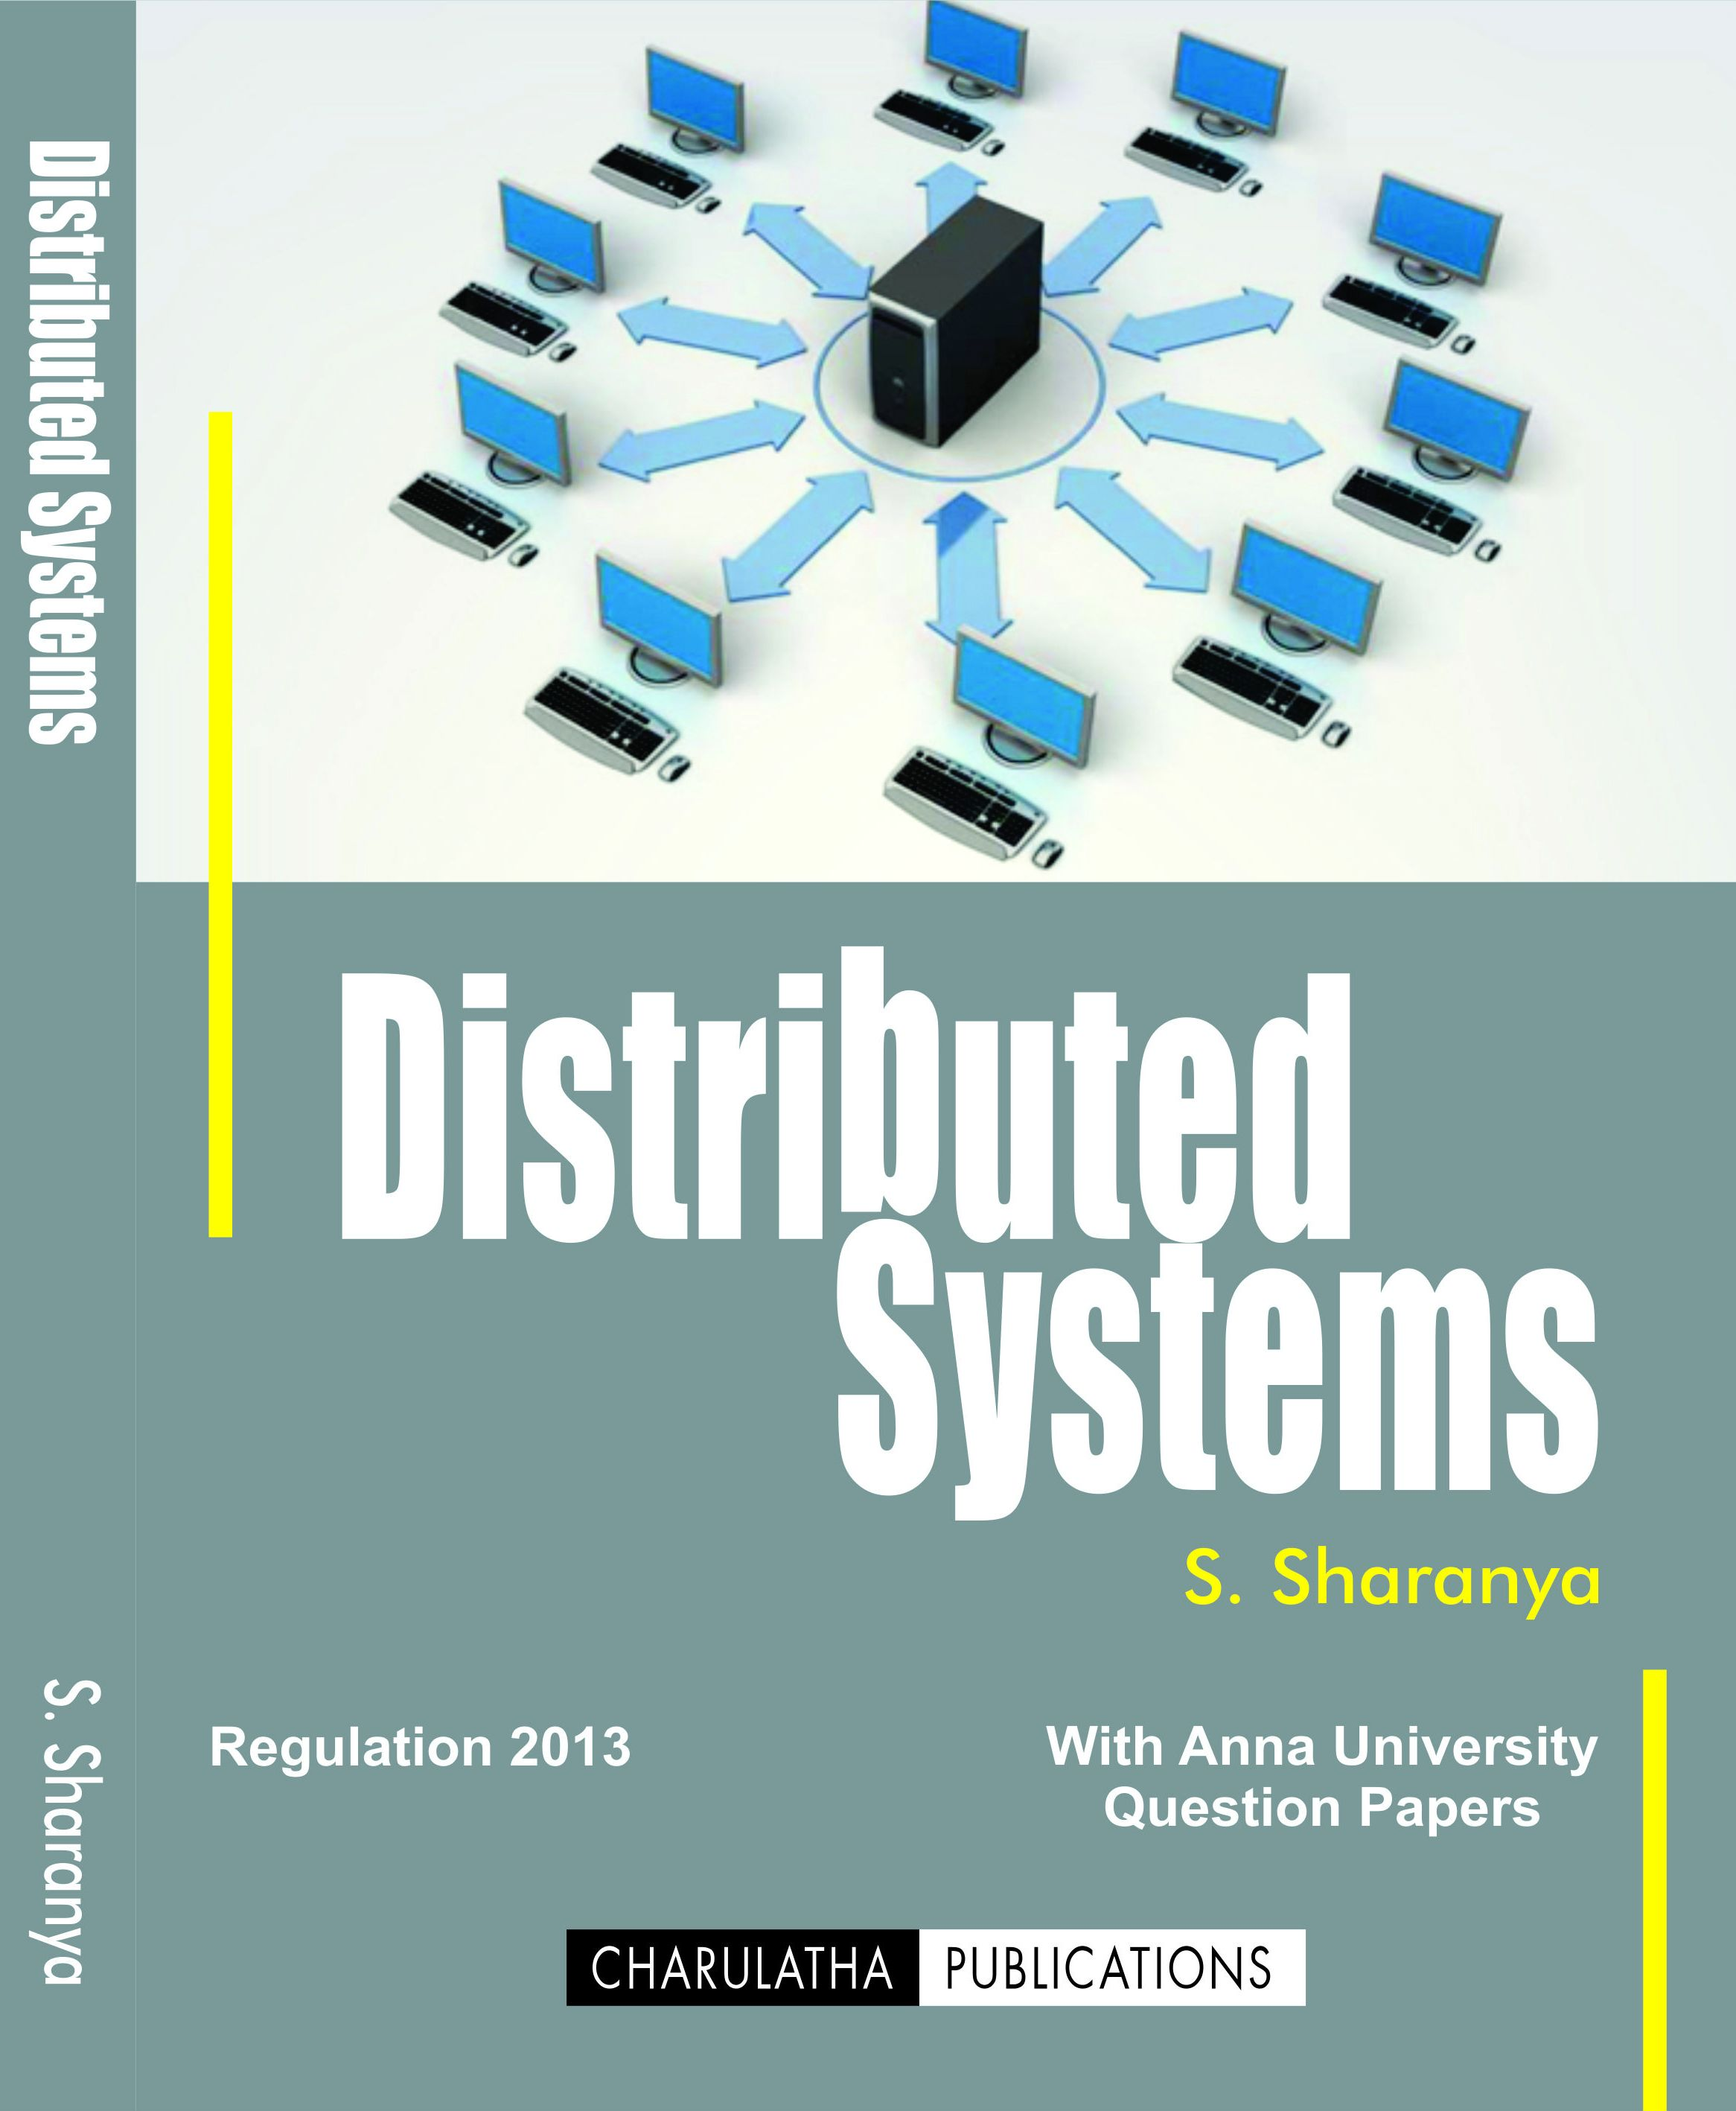 PDF] CS6601 Distributed Systems Lecture Notes, Books, Important 2